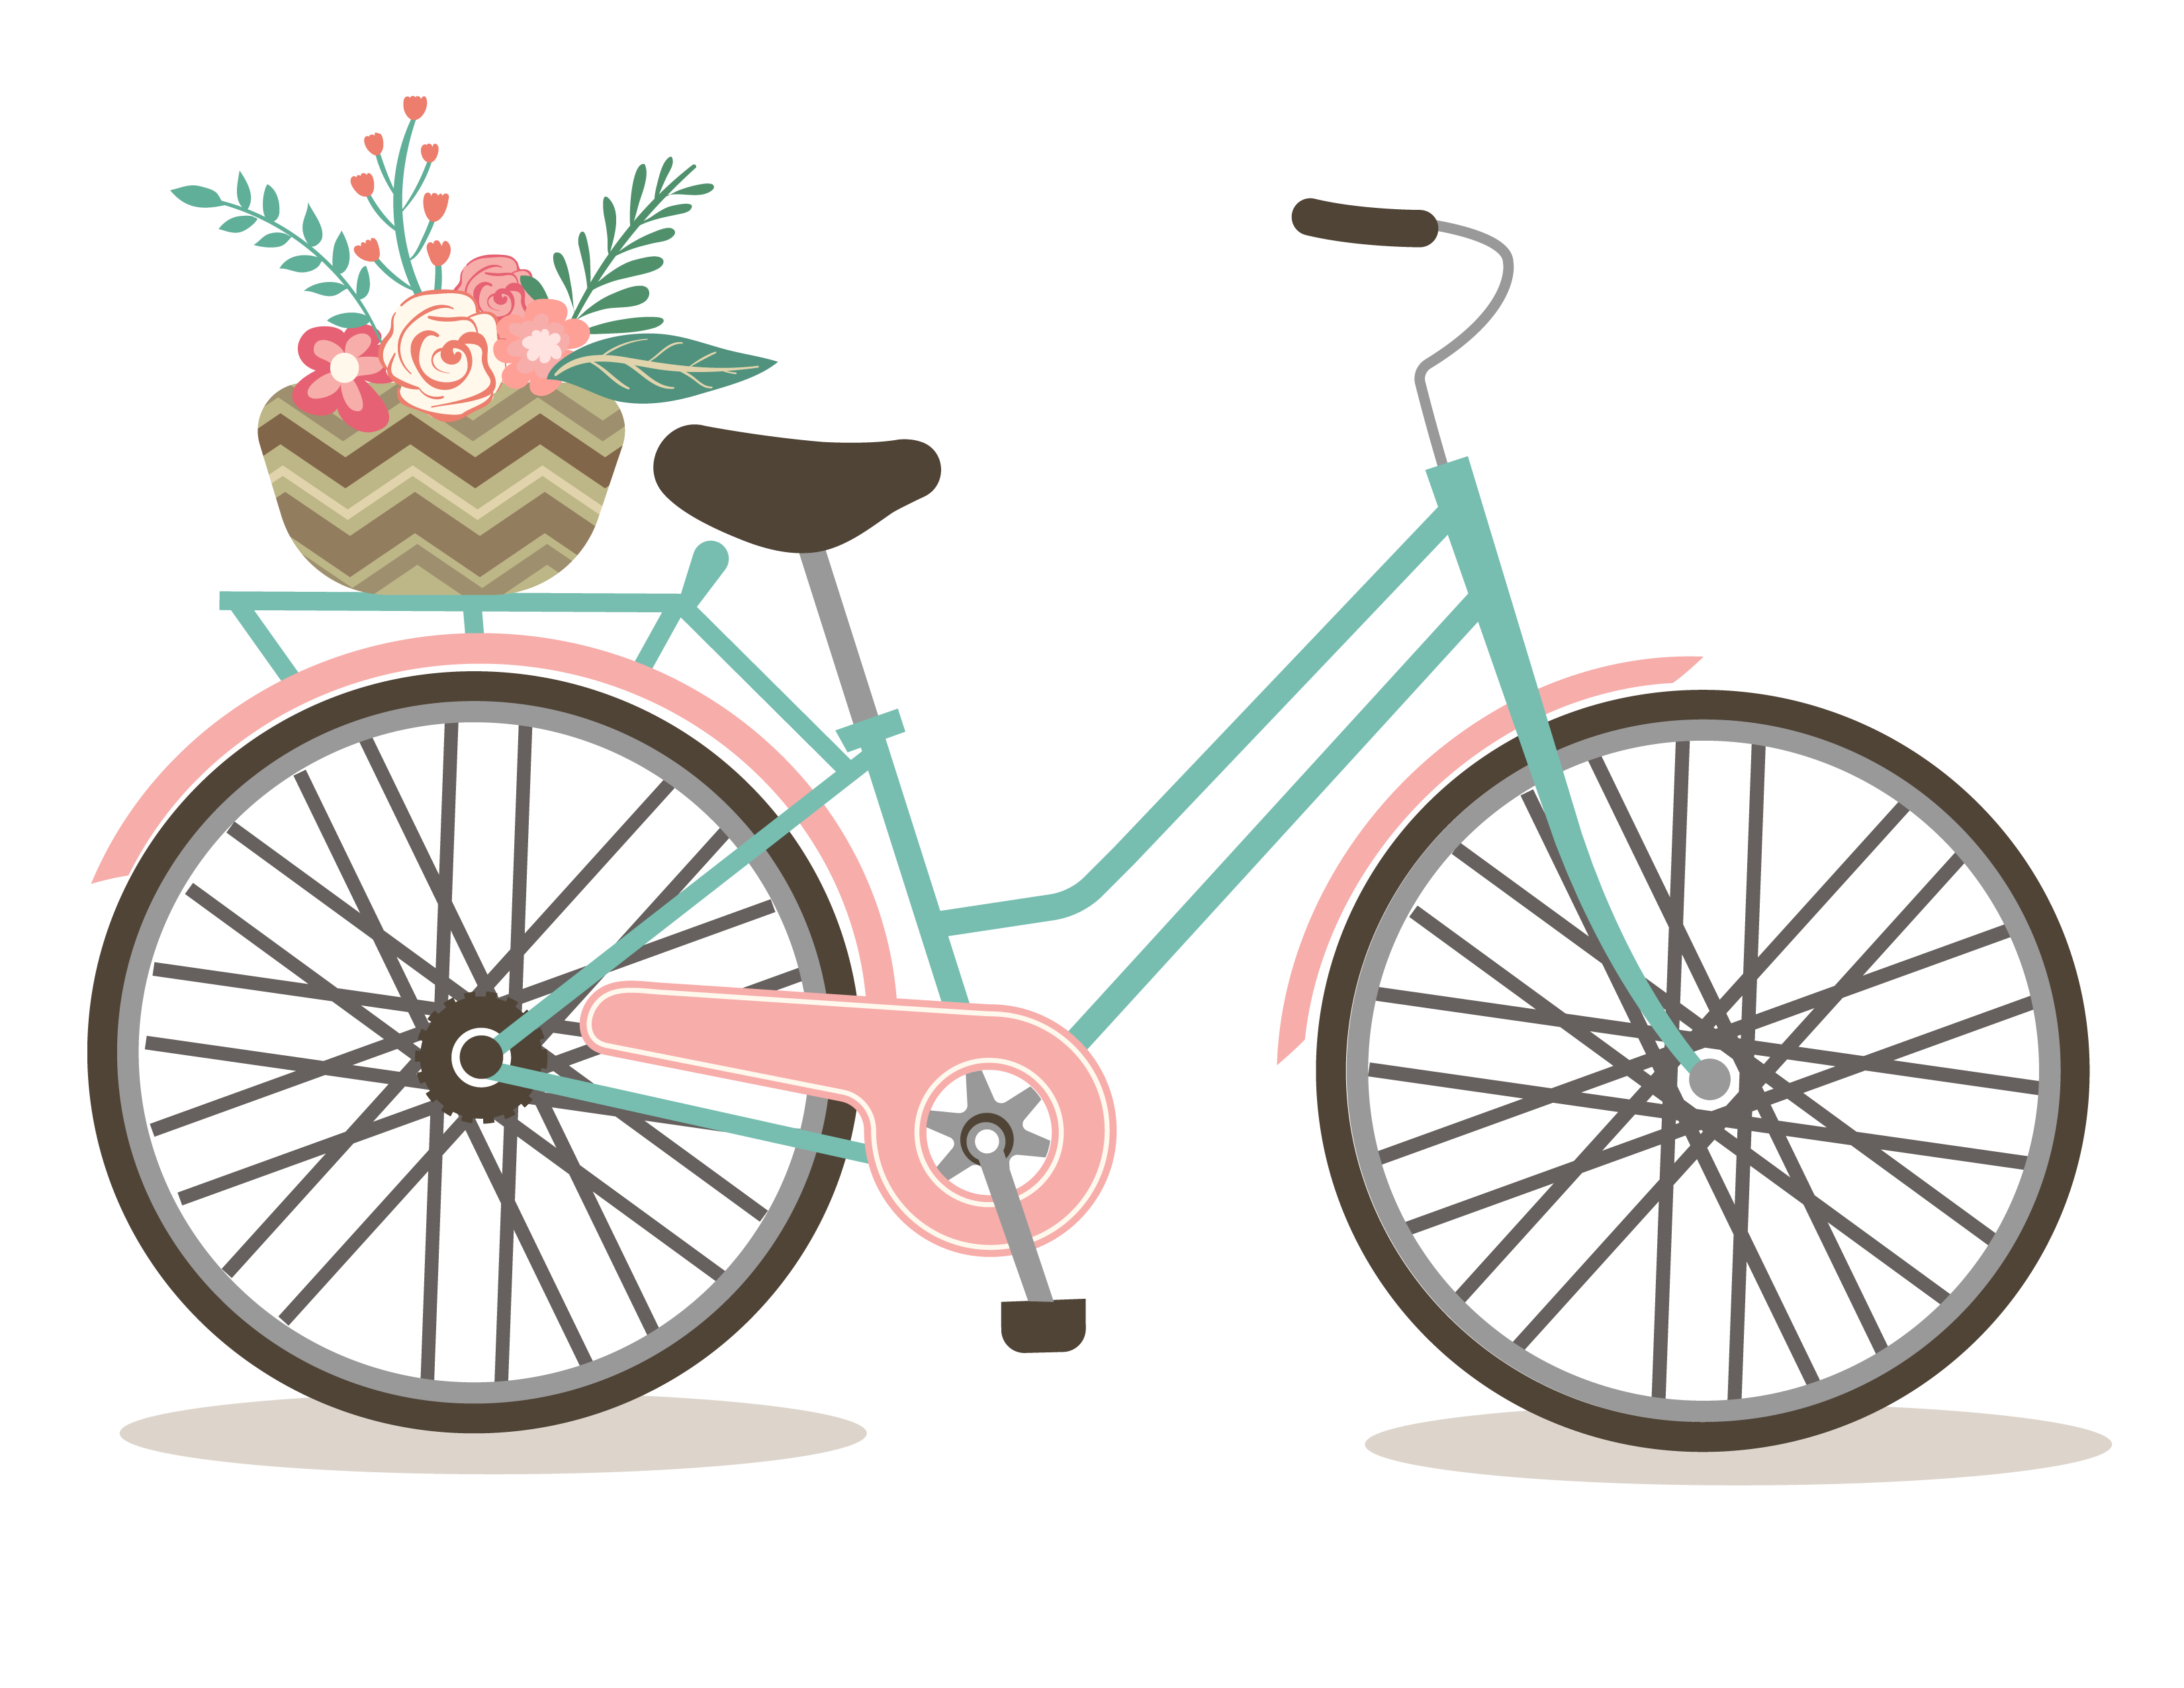 Free Bicycle Clip Art, Download Free Clip Art, Free Clip Art.